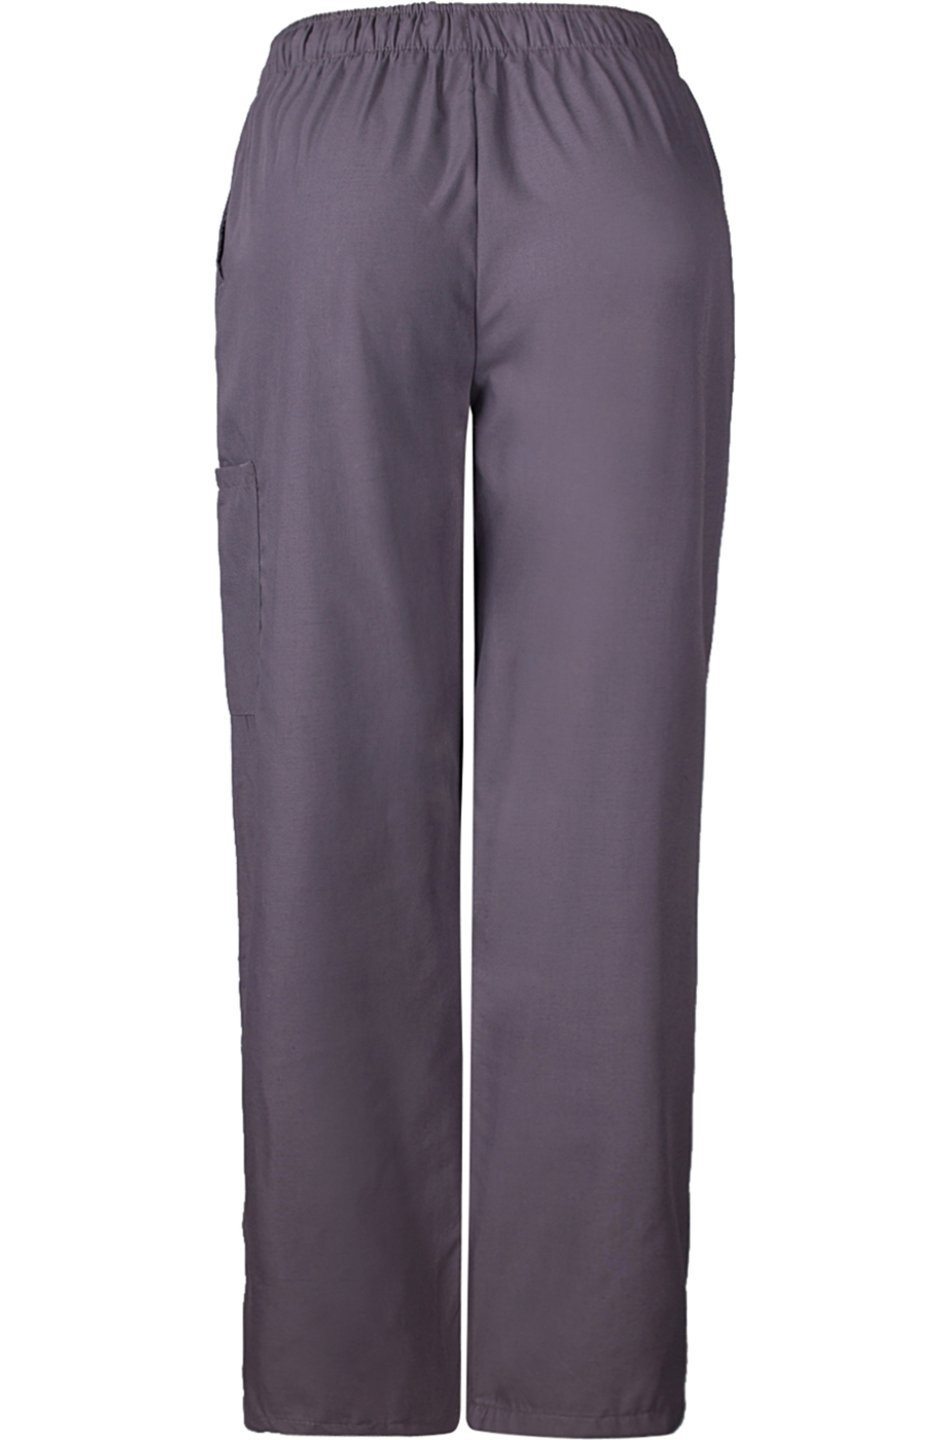 MedPro Women's Medical Scrub Set with Printed Wrap Top and Cargo Pants Purple Grey XL by MedPro (Image #5)